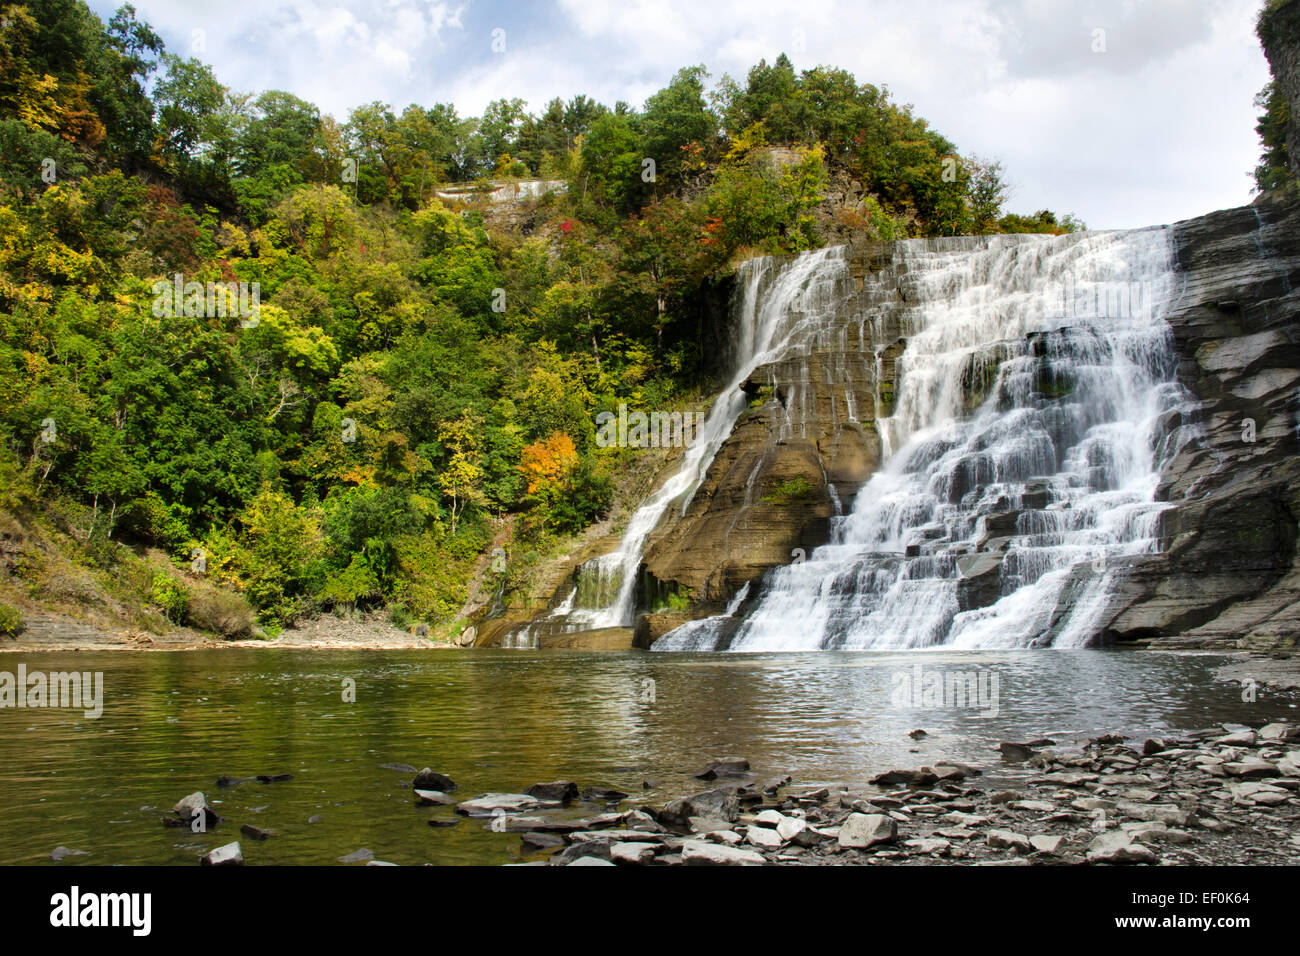 Ithaca Falls waterfall scenic landscape Finger Lakes Region, Ithaca Tompkins County central New York, USA. - Stock Image